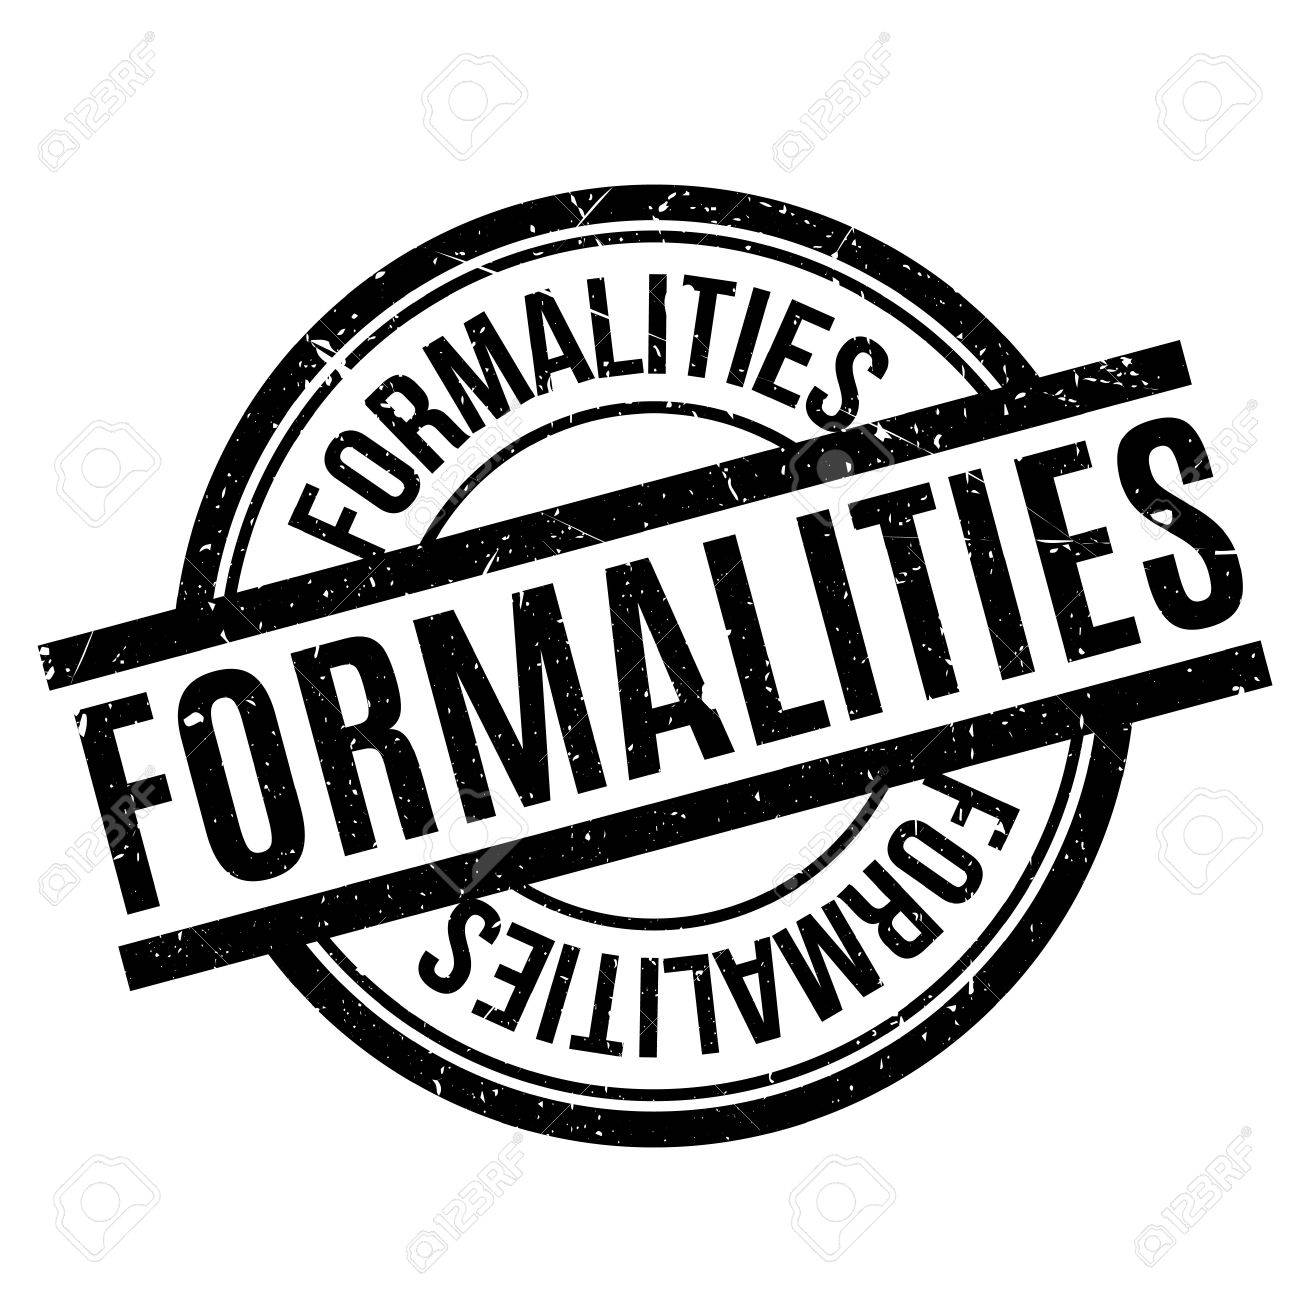 Formalities rubber stamp - 77407714